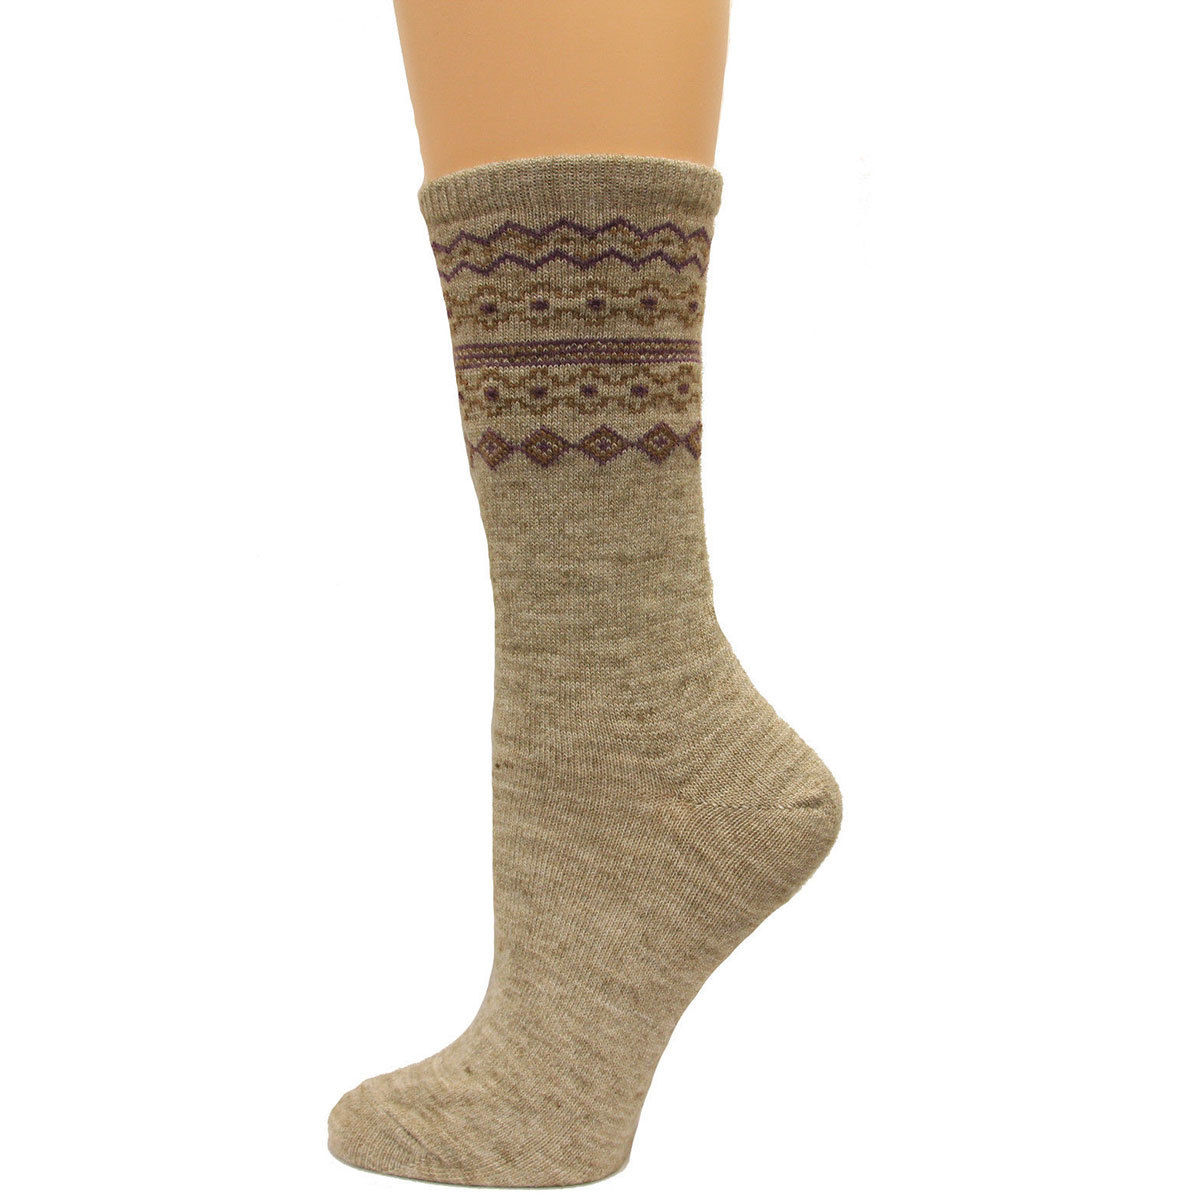 Carolina Hosiery Women's Fair Isle Crew Socks - Black, M